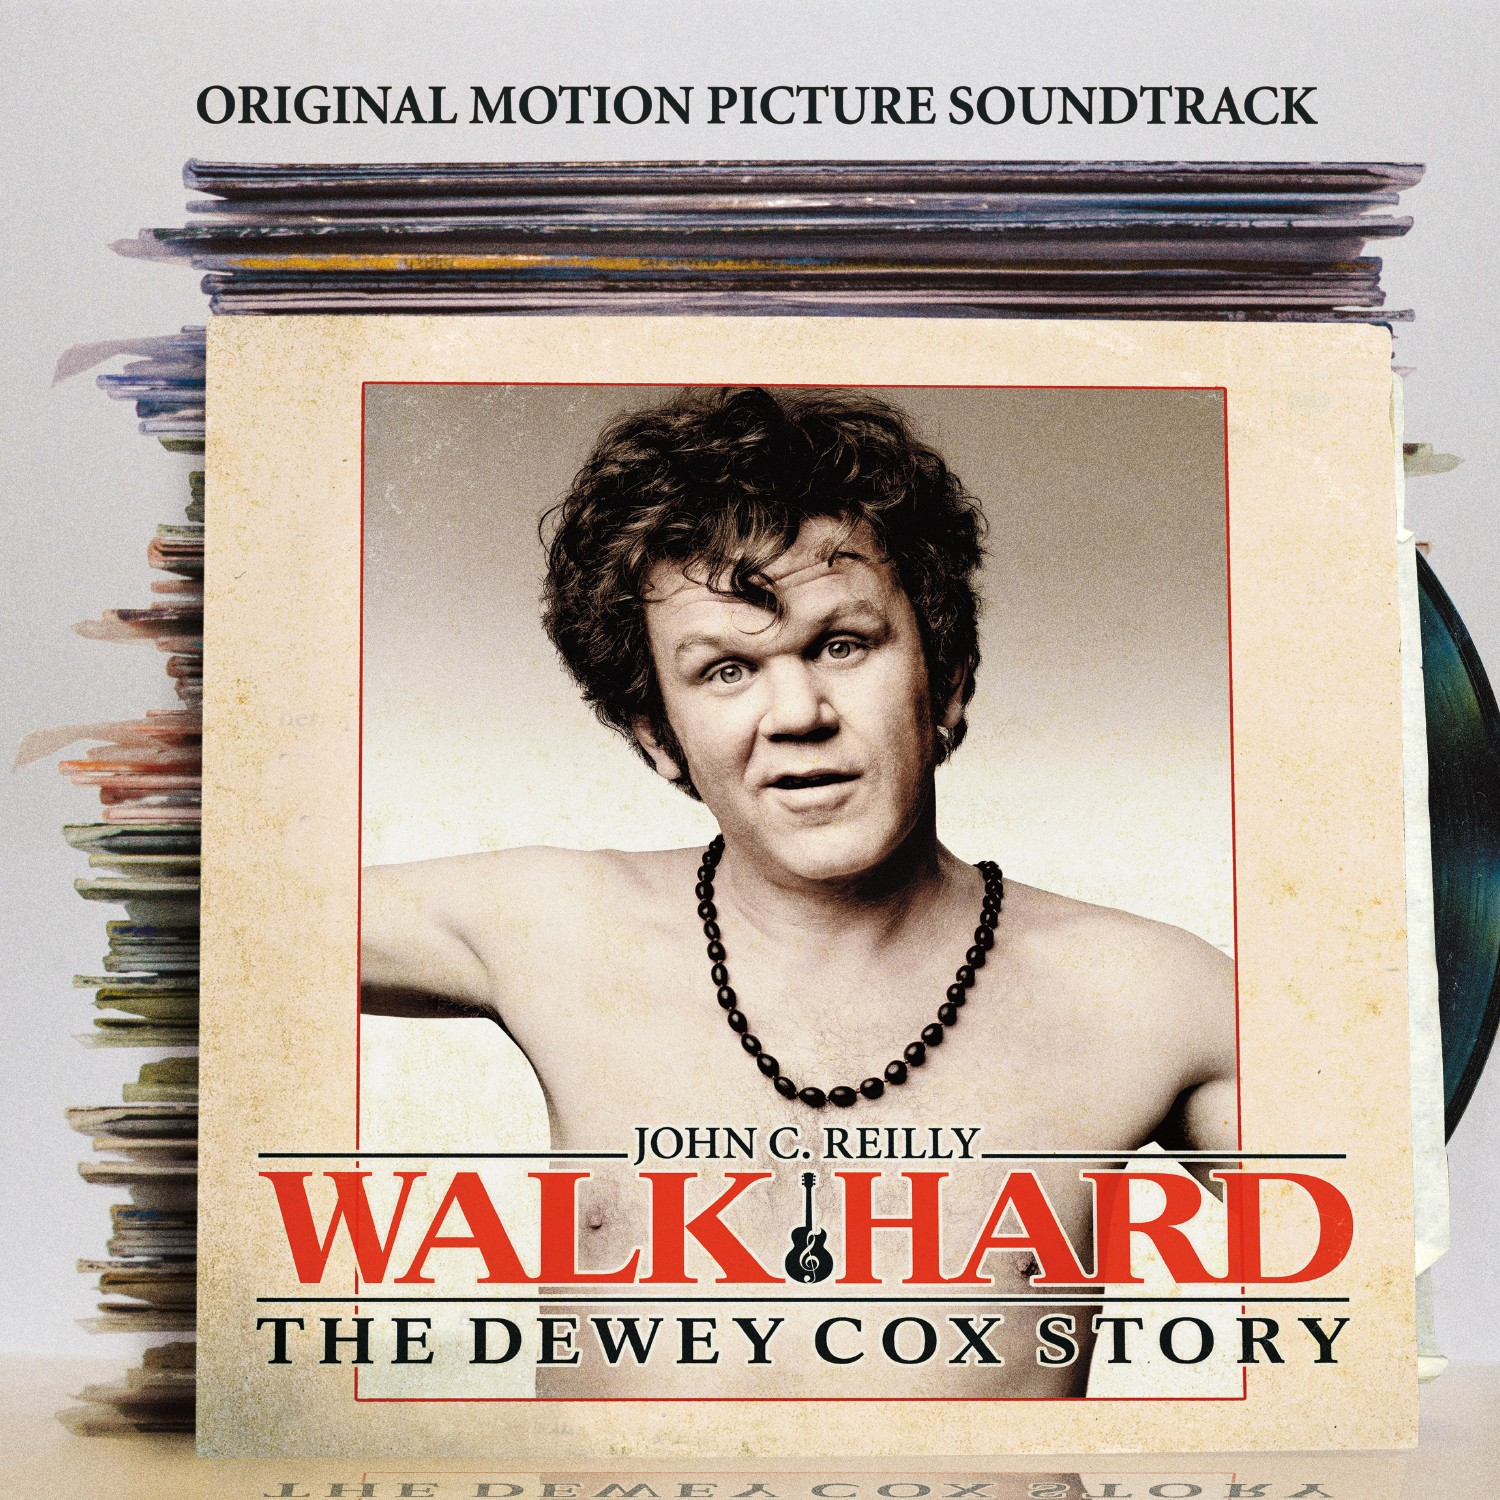 John C. Reilly - Walk Hard: The Dewey Cox Story (Soundtrack) (Clear) Vinyl LP